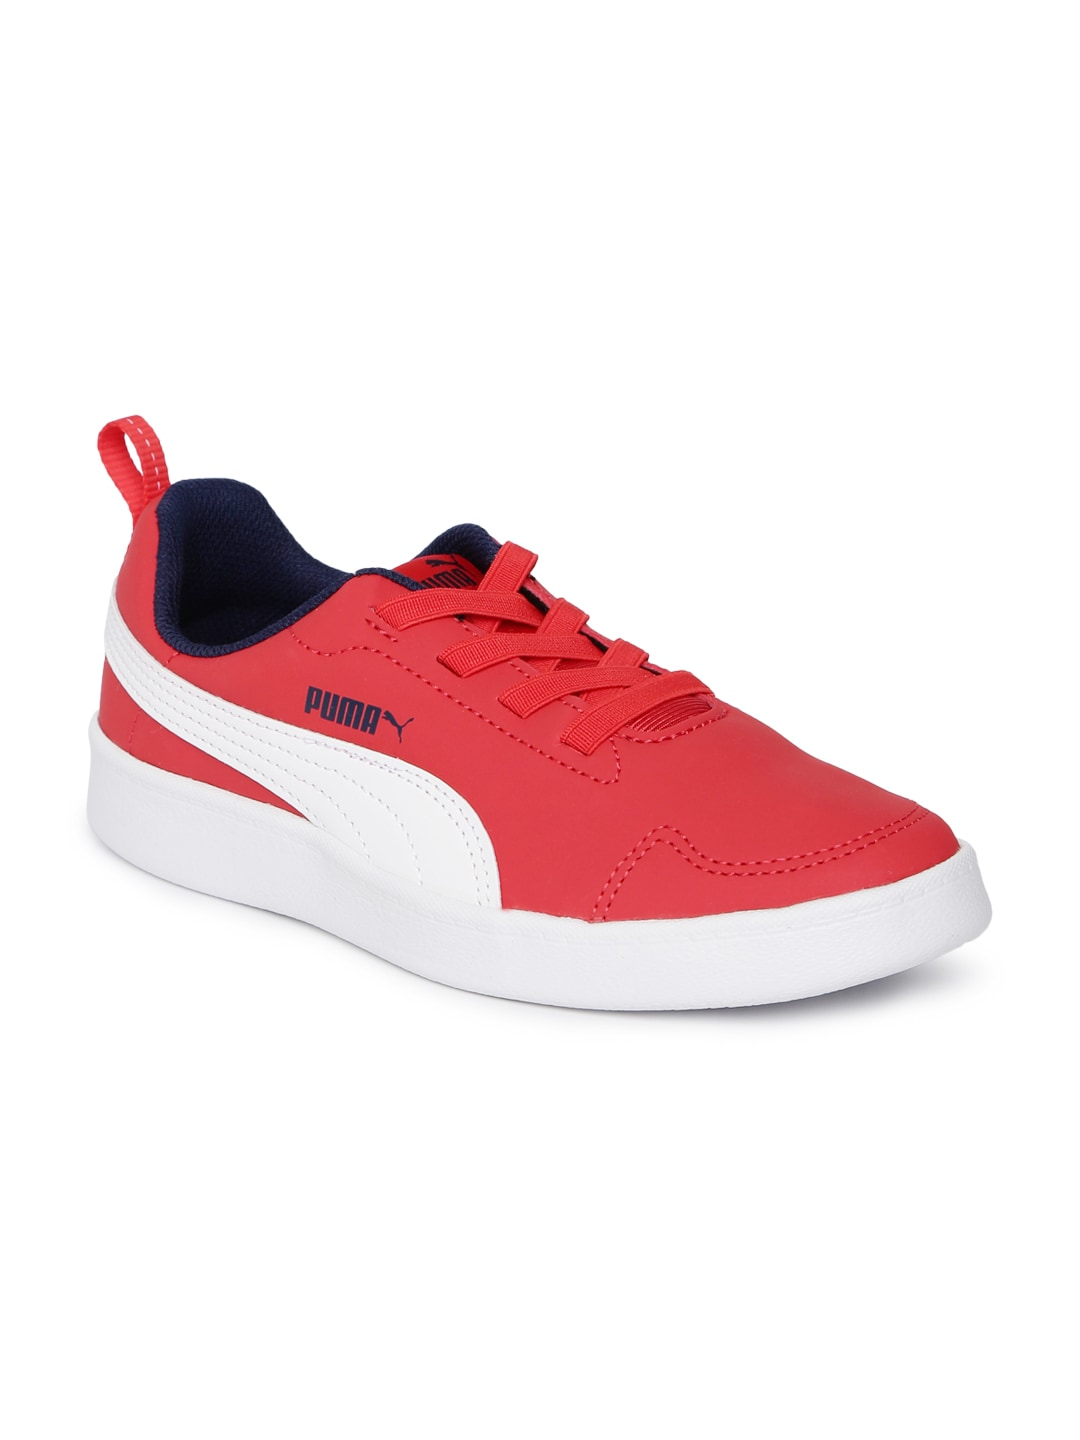 2ed4b120fd5b Puma Shoes - Buy Puma Shoes for Men   Women Online in India